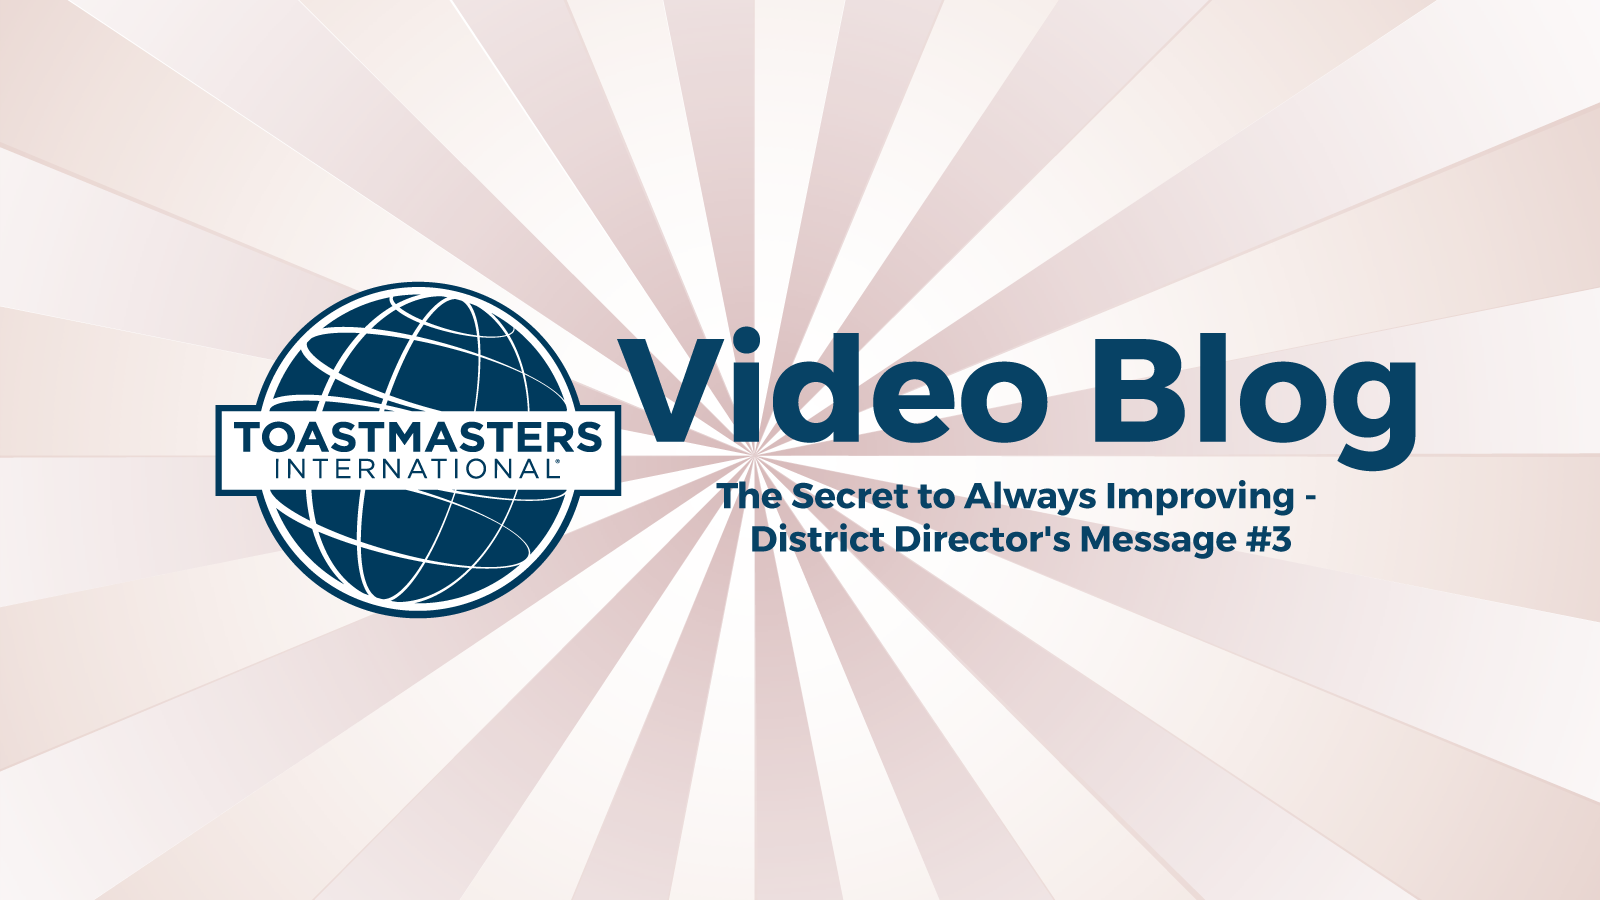 The Secret to Always Improving – District Director's Message #3